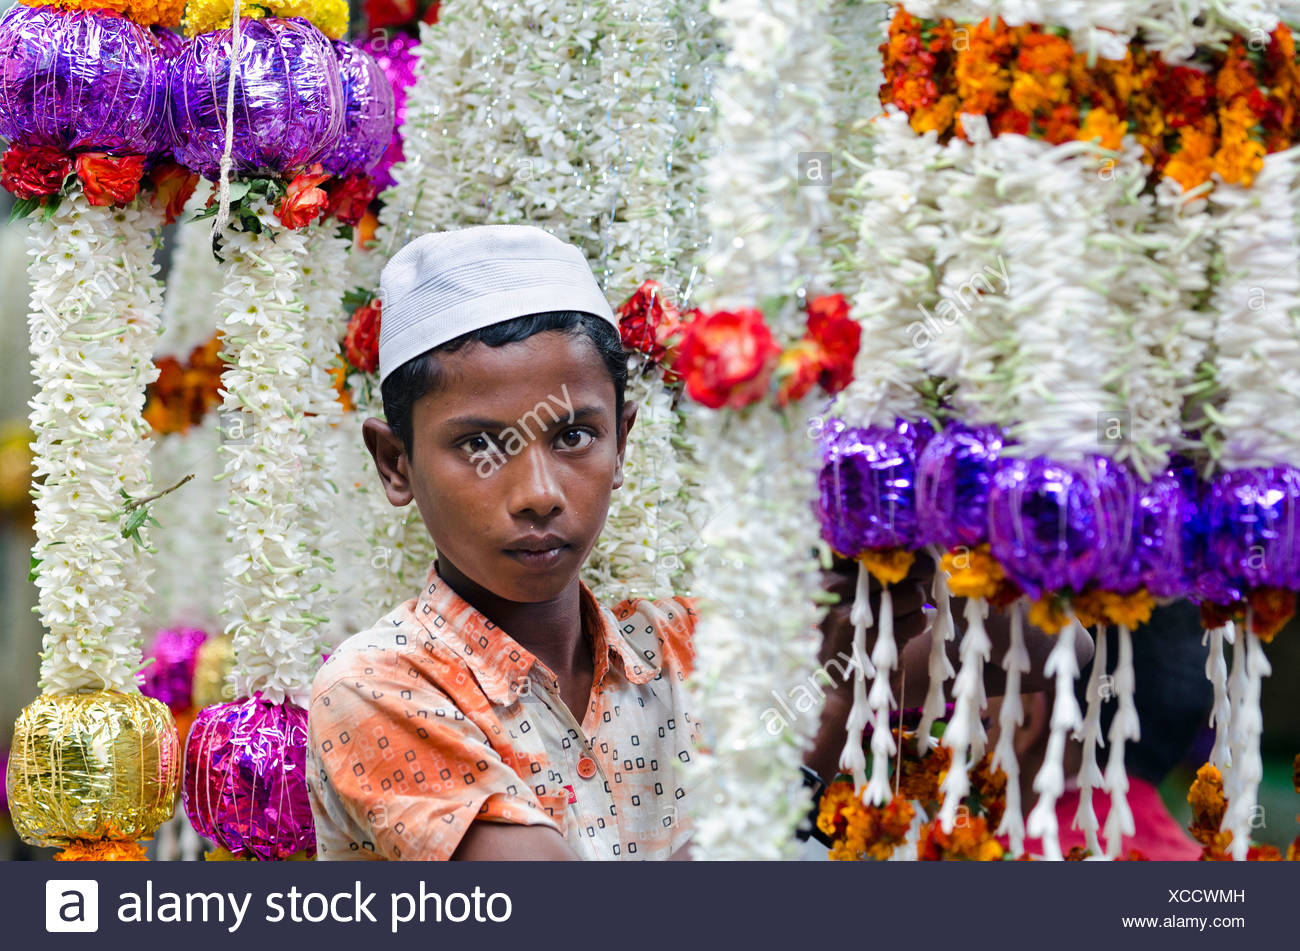 Muslim flower seller, leis or floral garlands, market, Mysore, South India, India, Asia - Stock Image